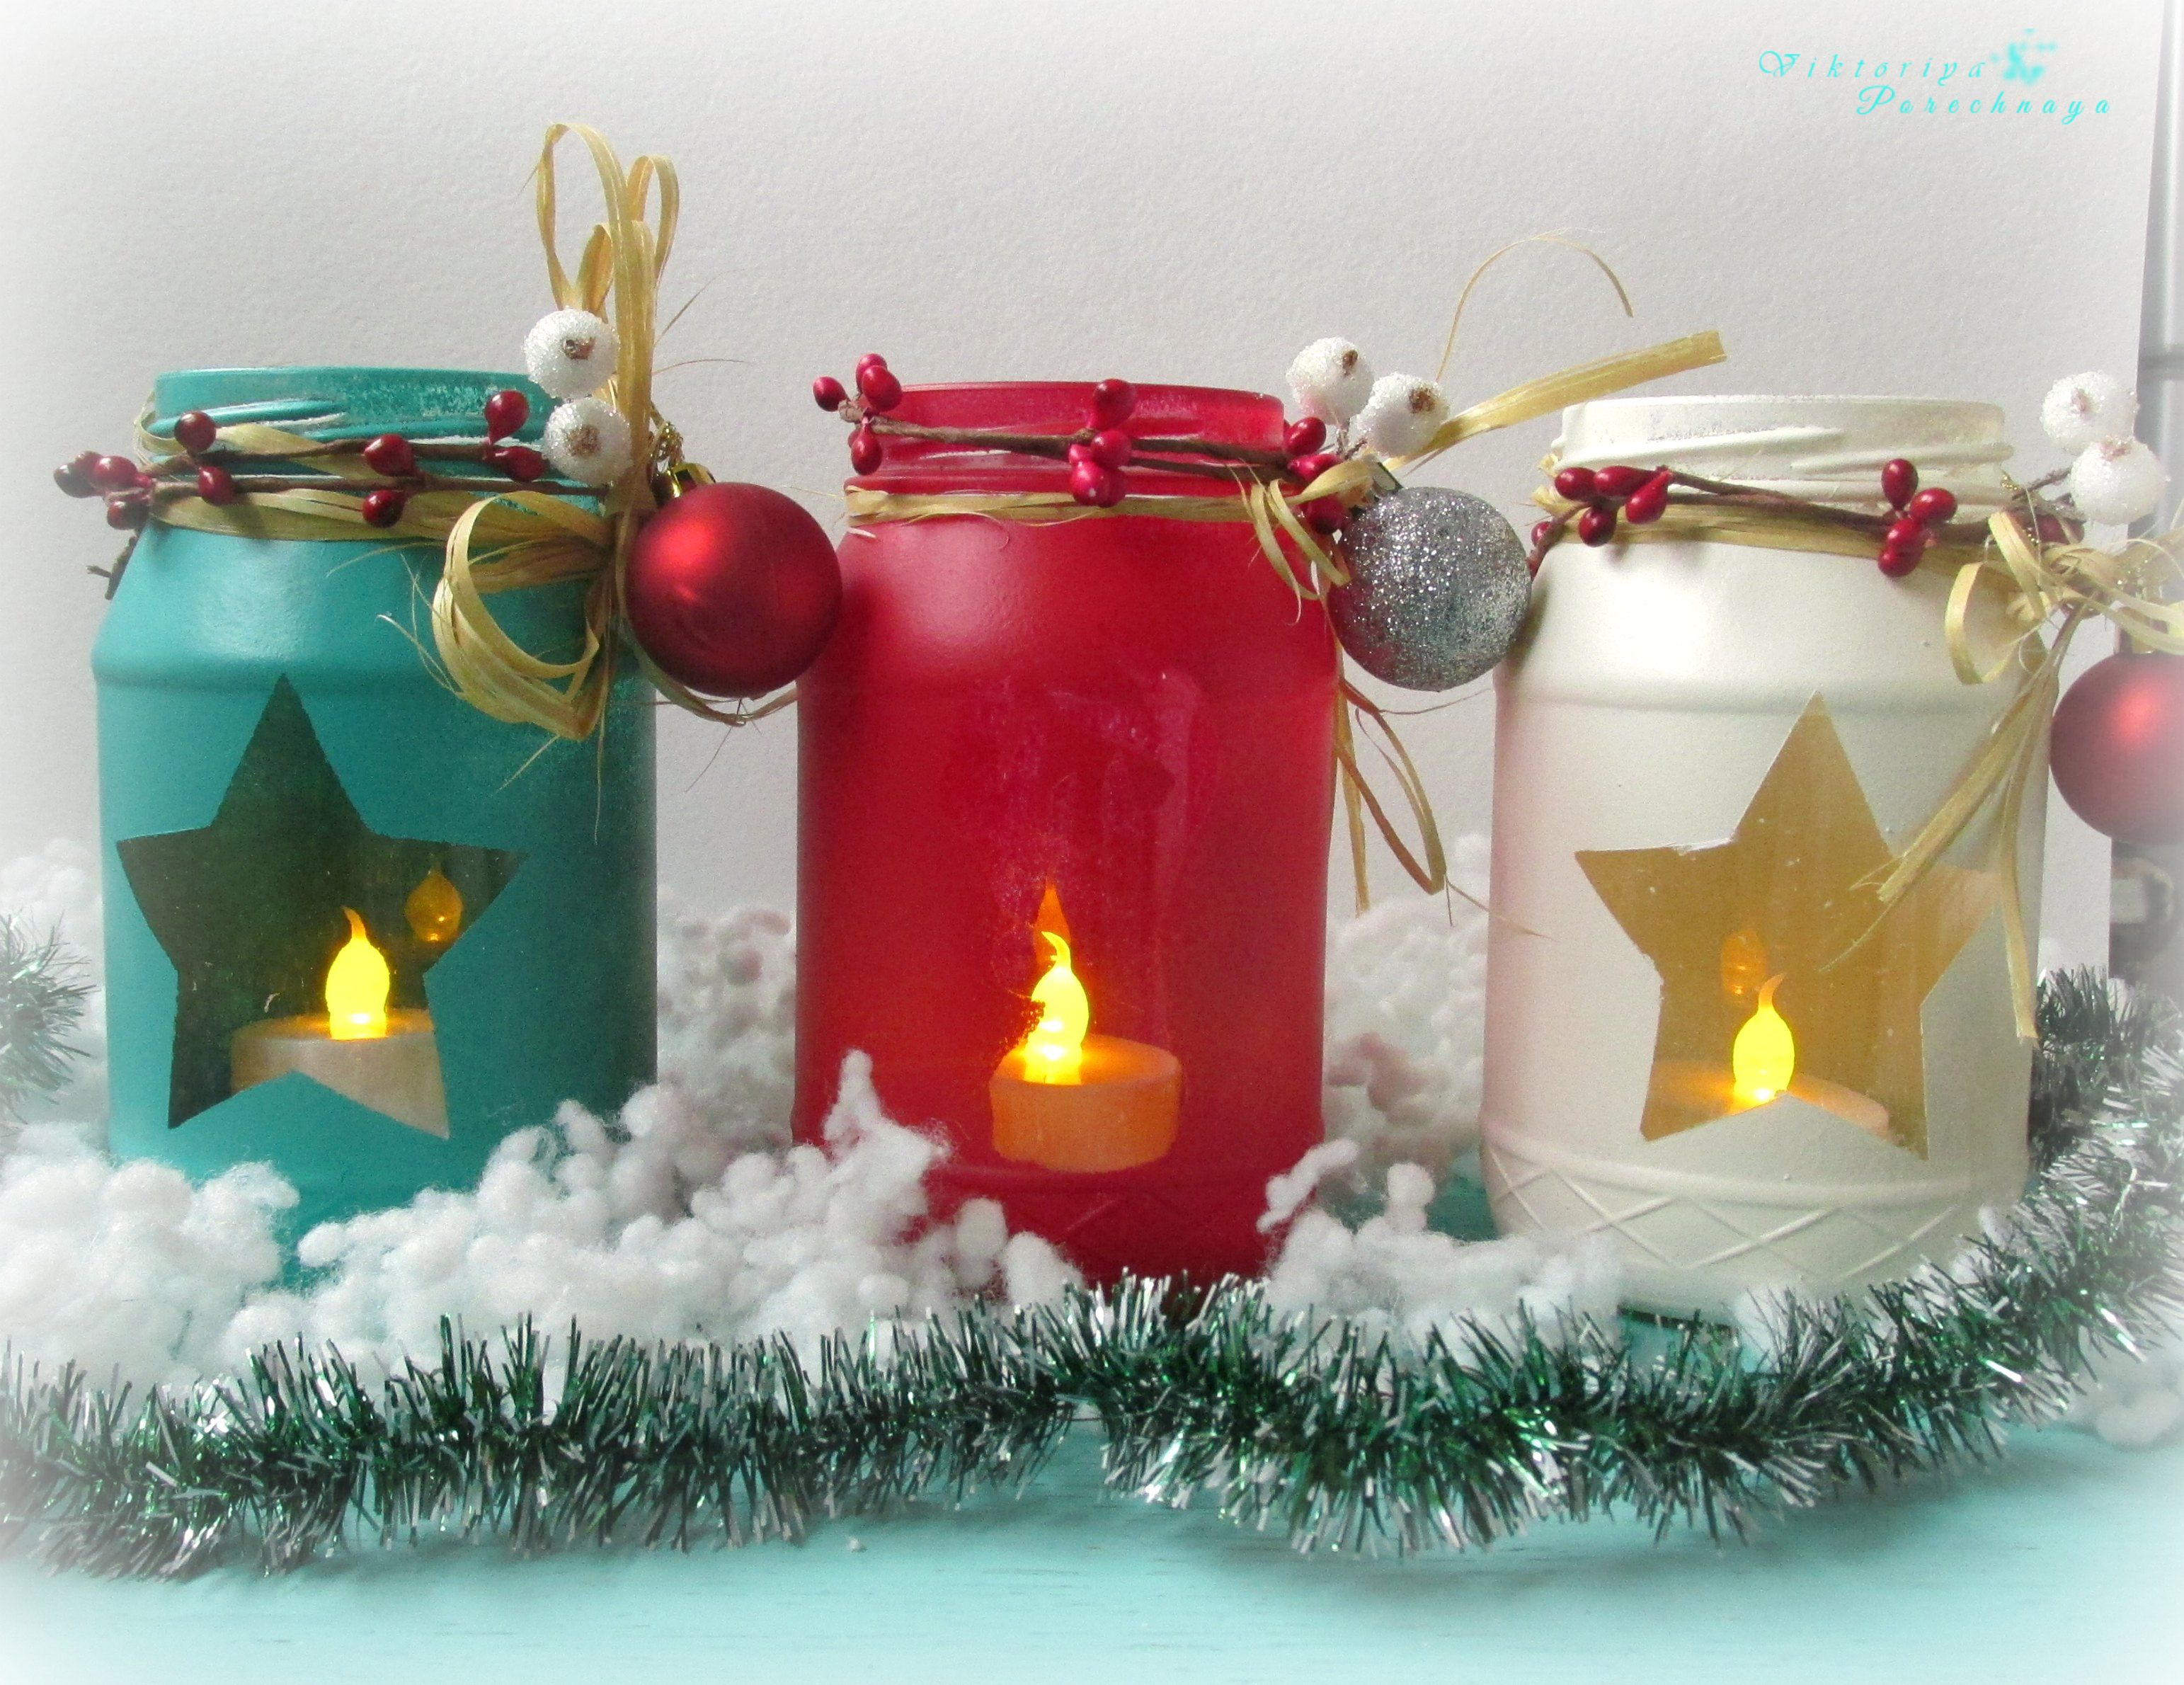 Decorated Jars For Christmas Mason Jar Candles  Holiday Crafts  Christmas  Pinterest  Jar